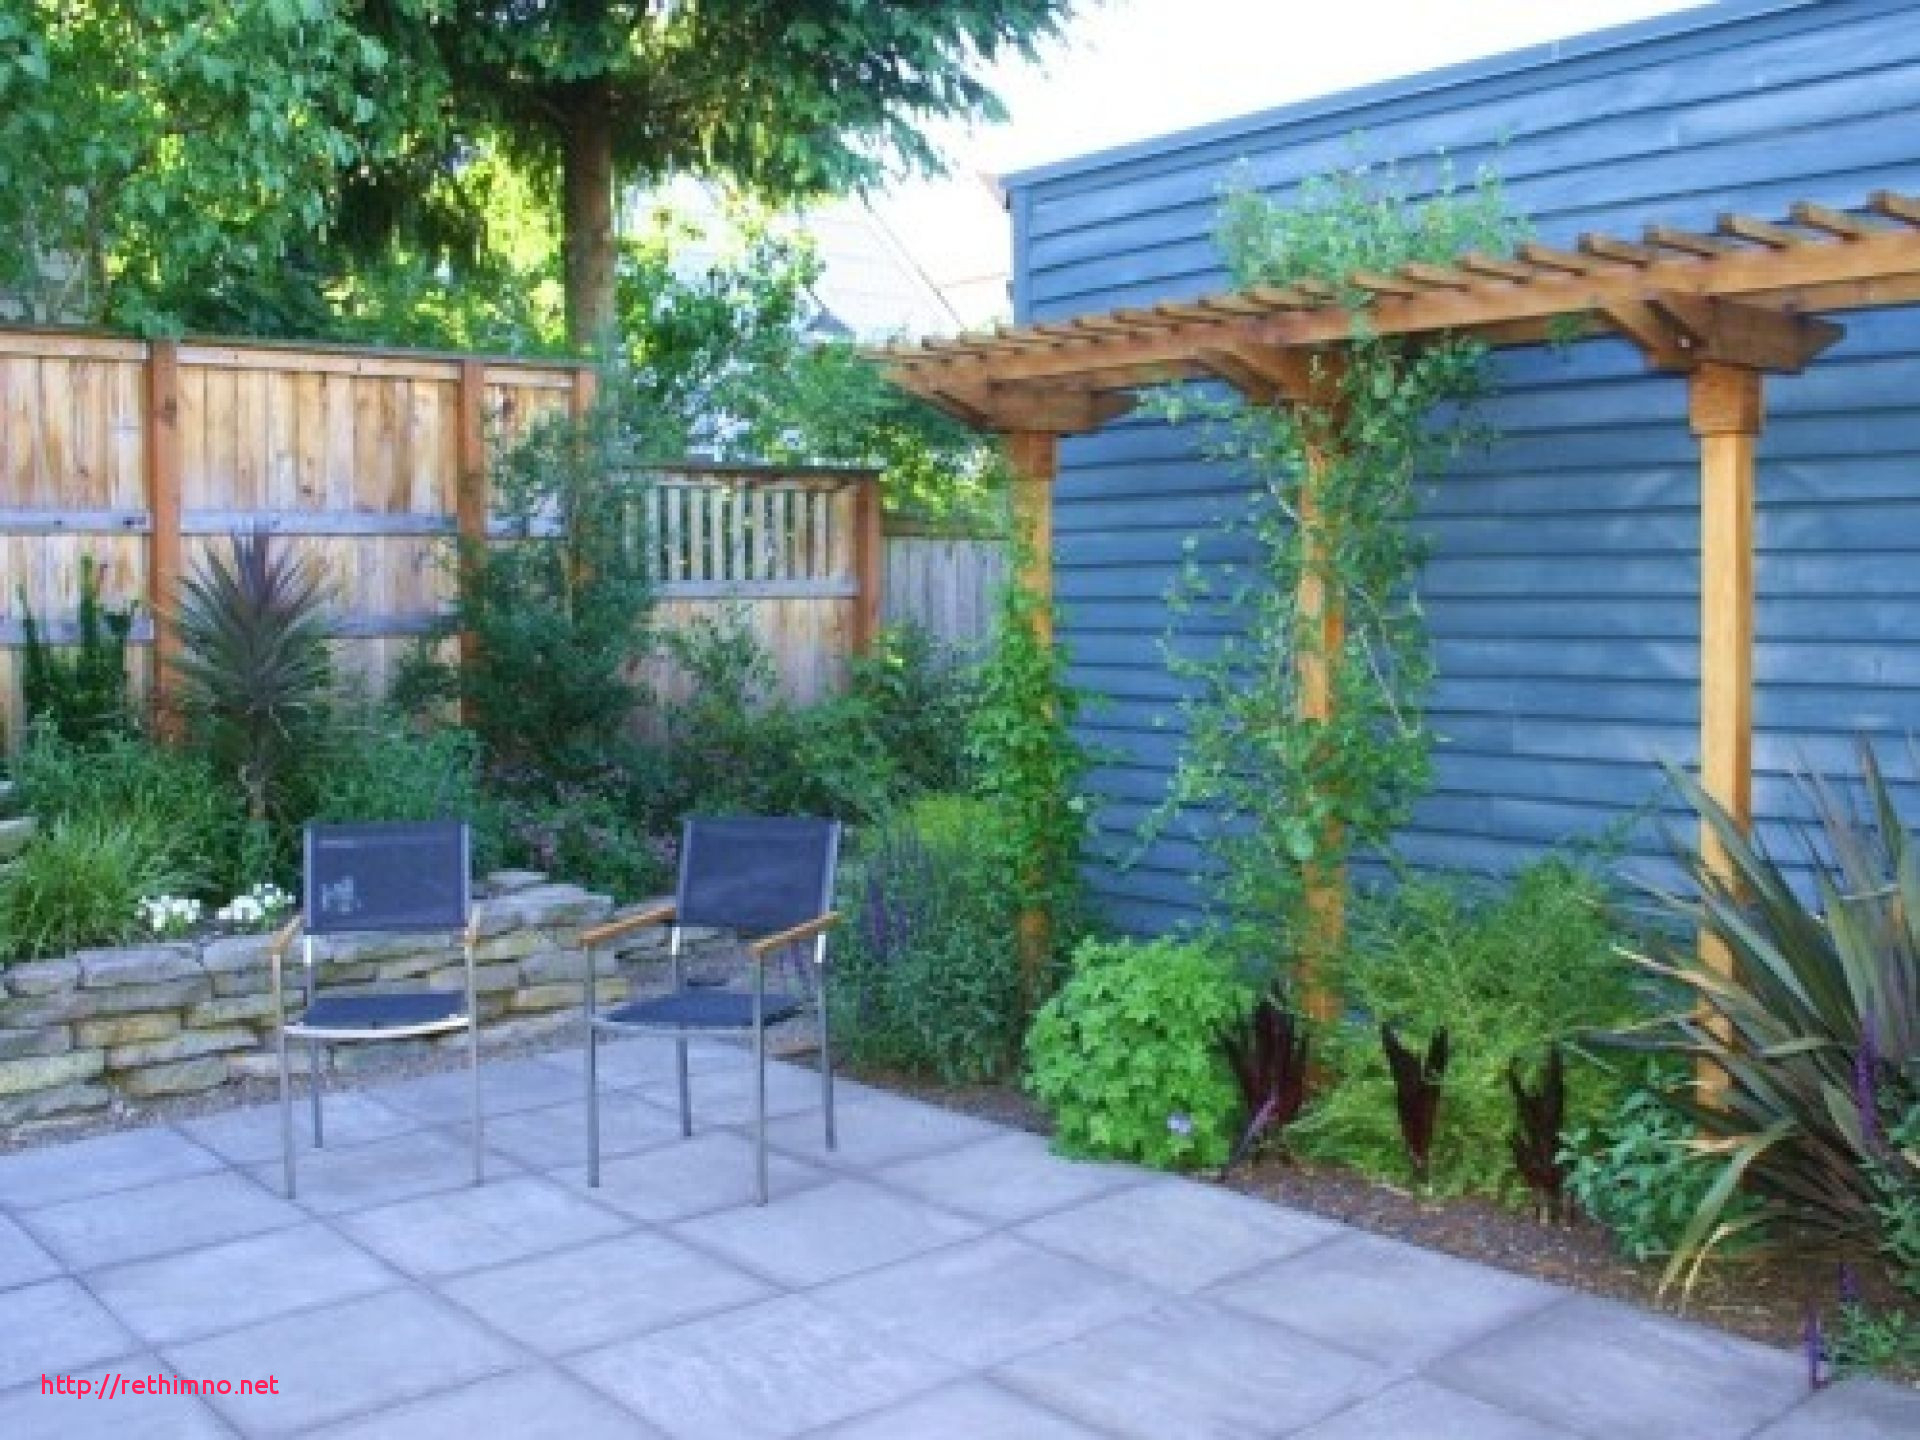 Low Budget Backyard Ideas Unique Patio Ideas A Bud Rethimno pertaining to Low Budget Backyard Landscaping Ideas